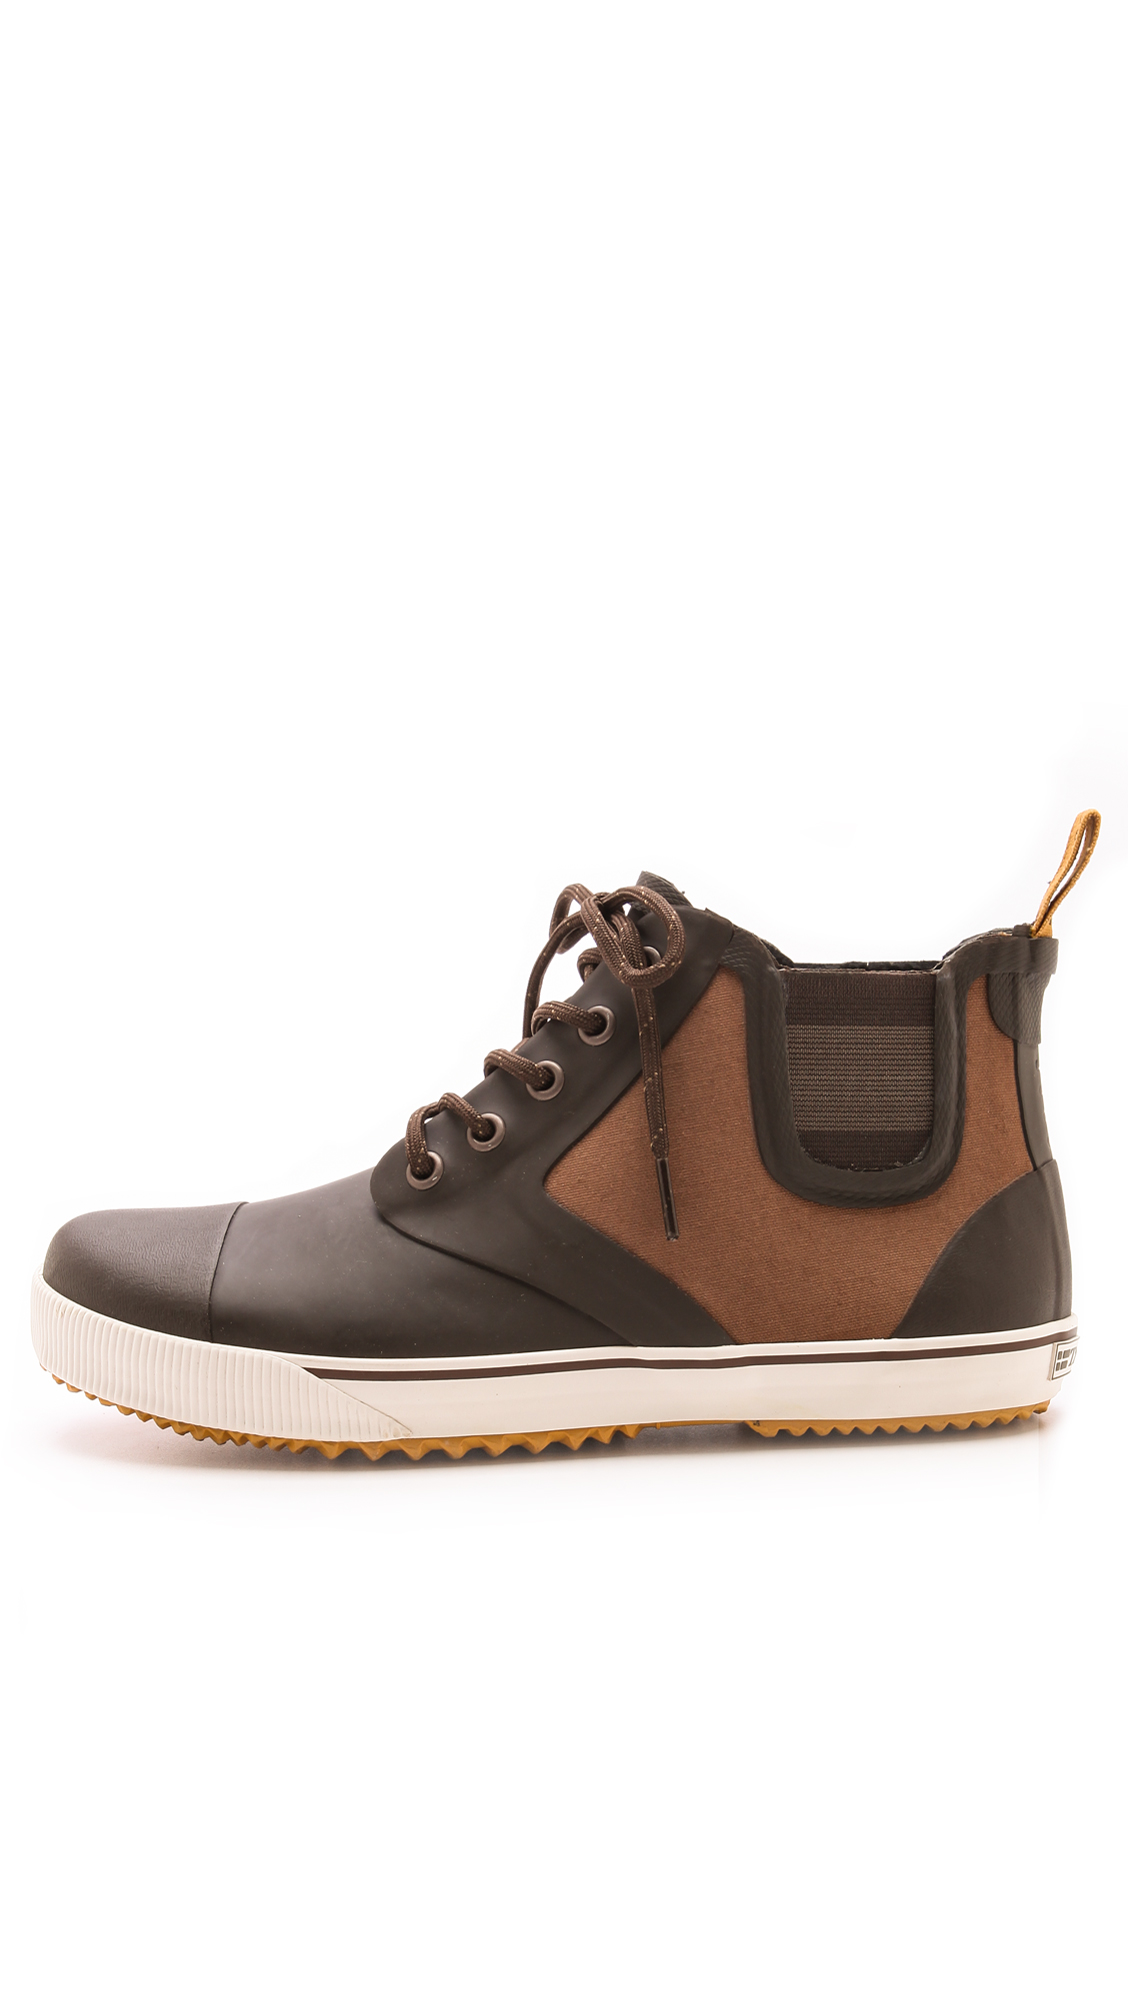 Lyst Tretorn Gunnar Canvas Rubber Boots In Brown For Men